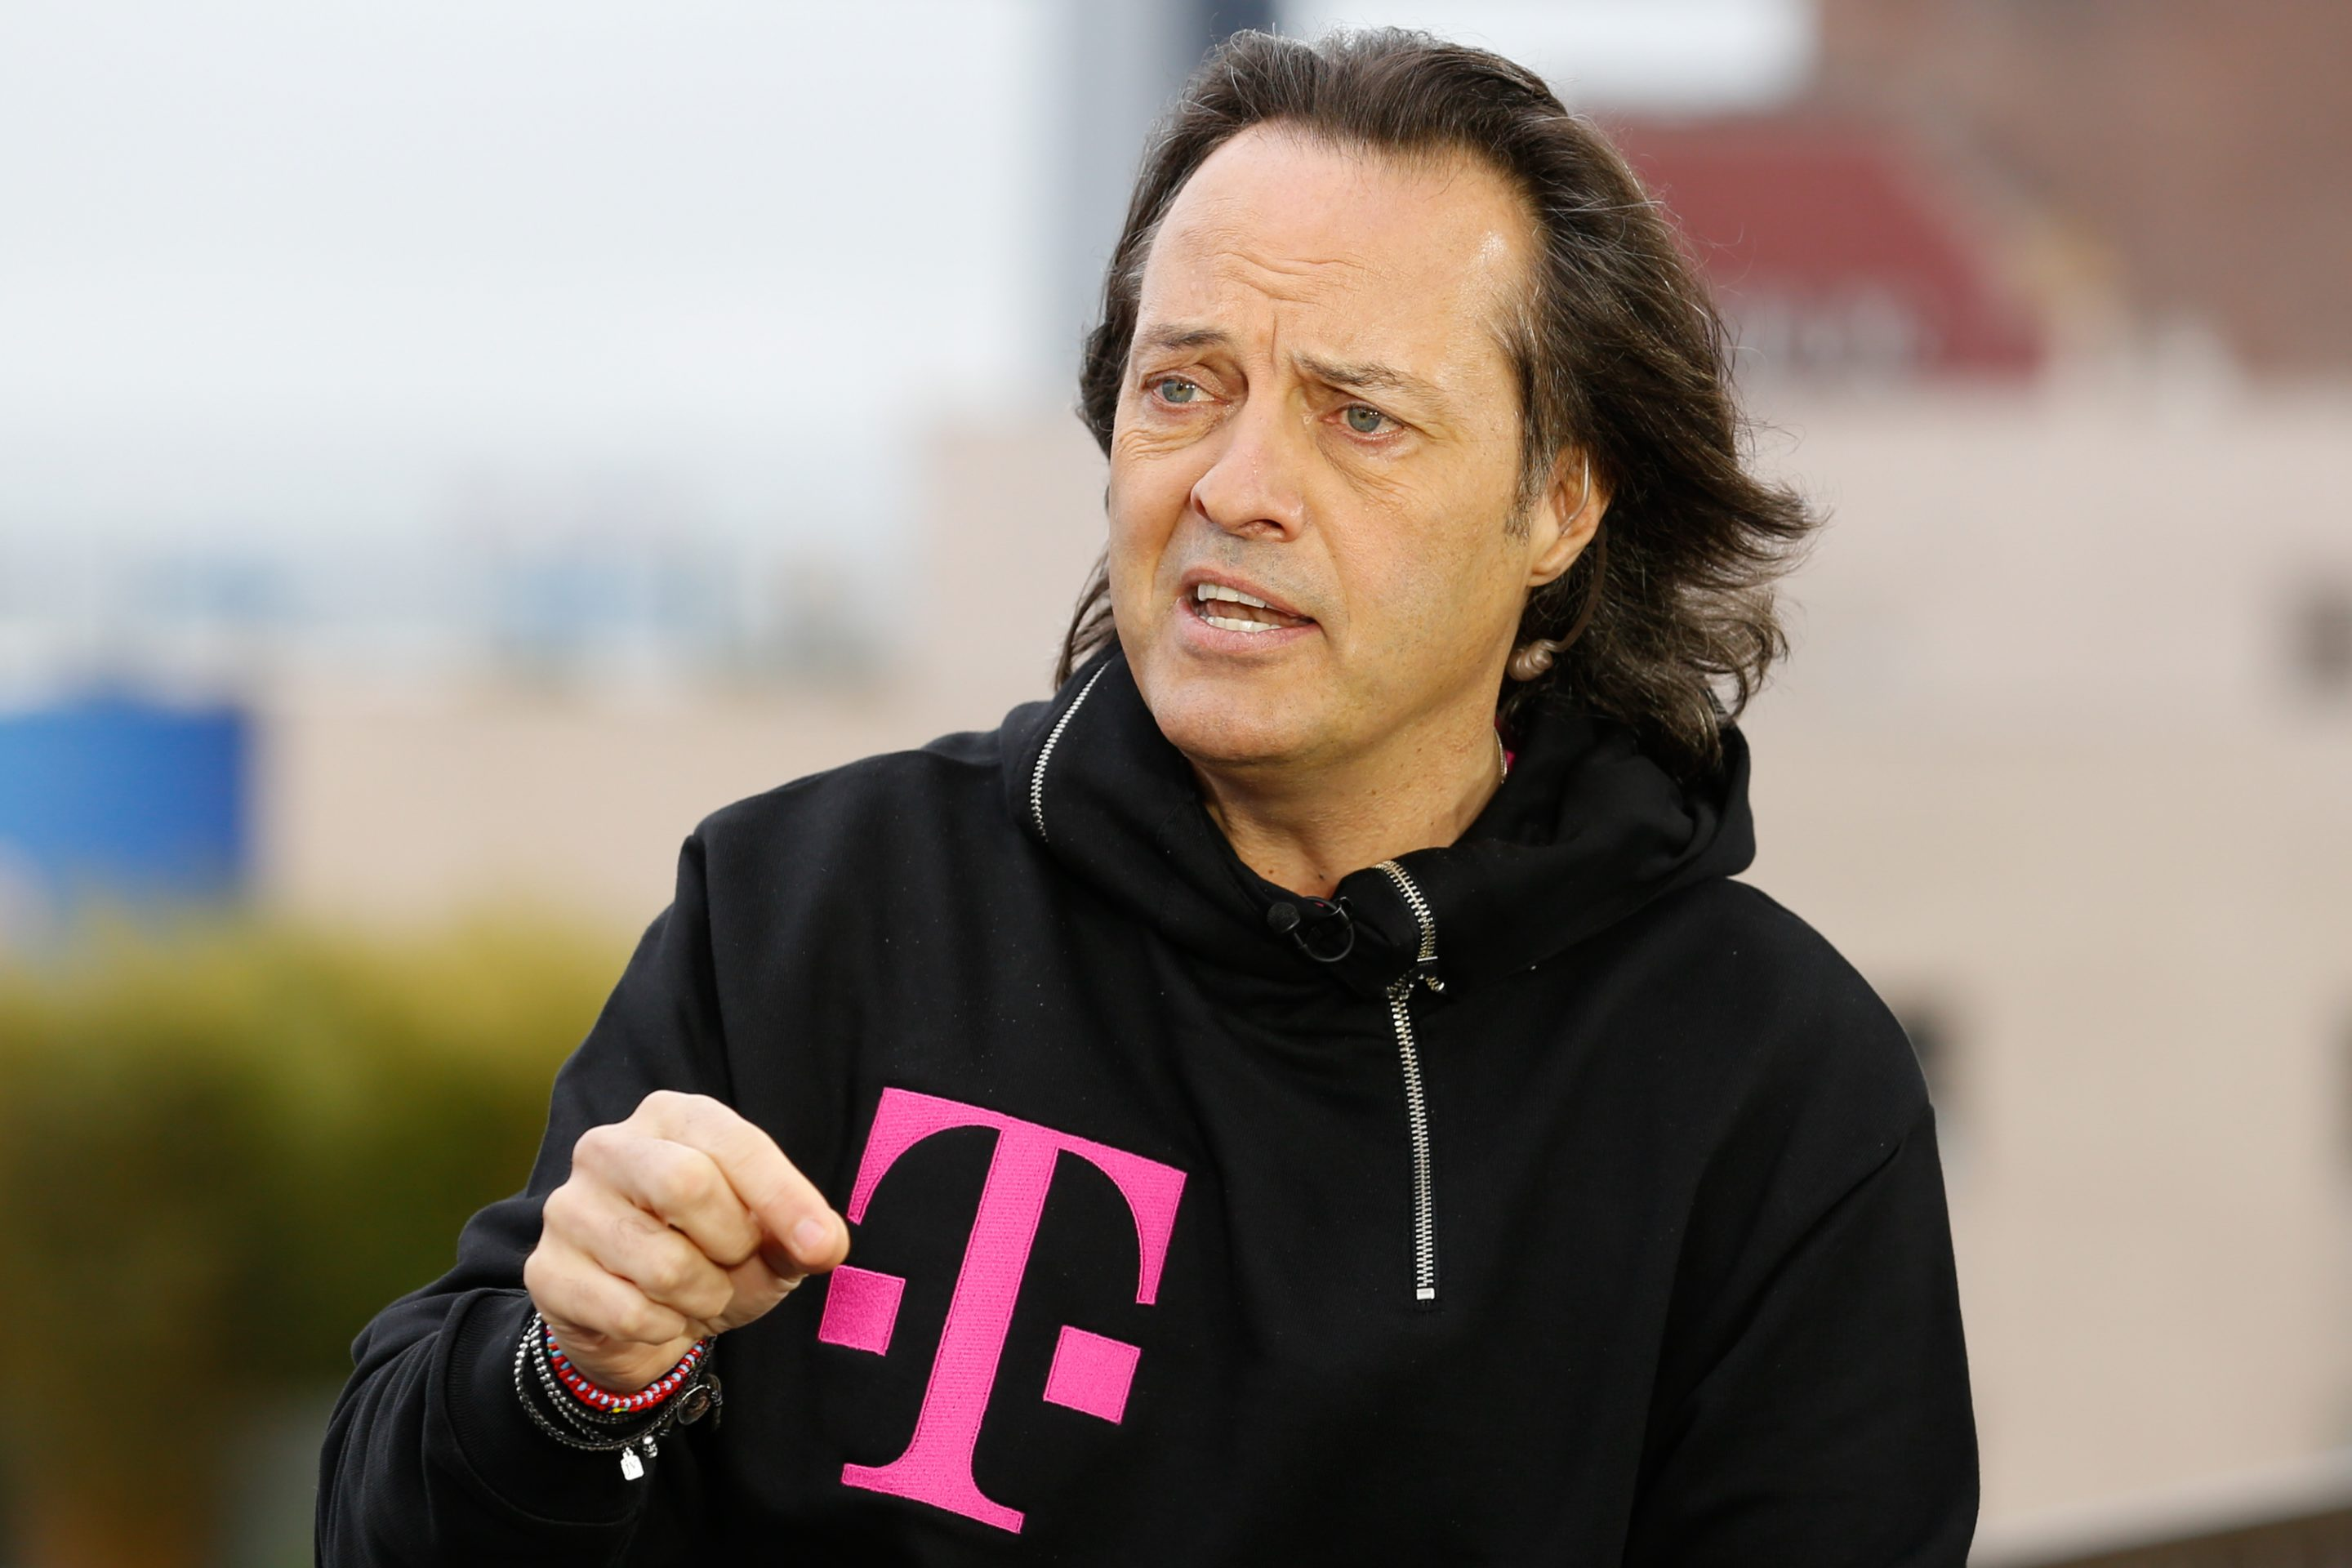 Why It's Not So Crazy for T-Mobile CEO John Legere to Run WeWork